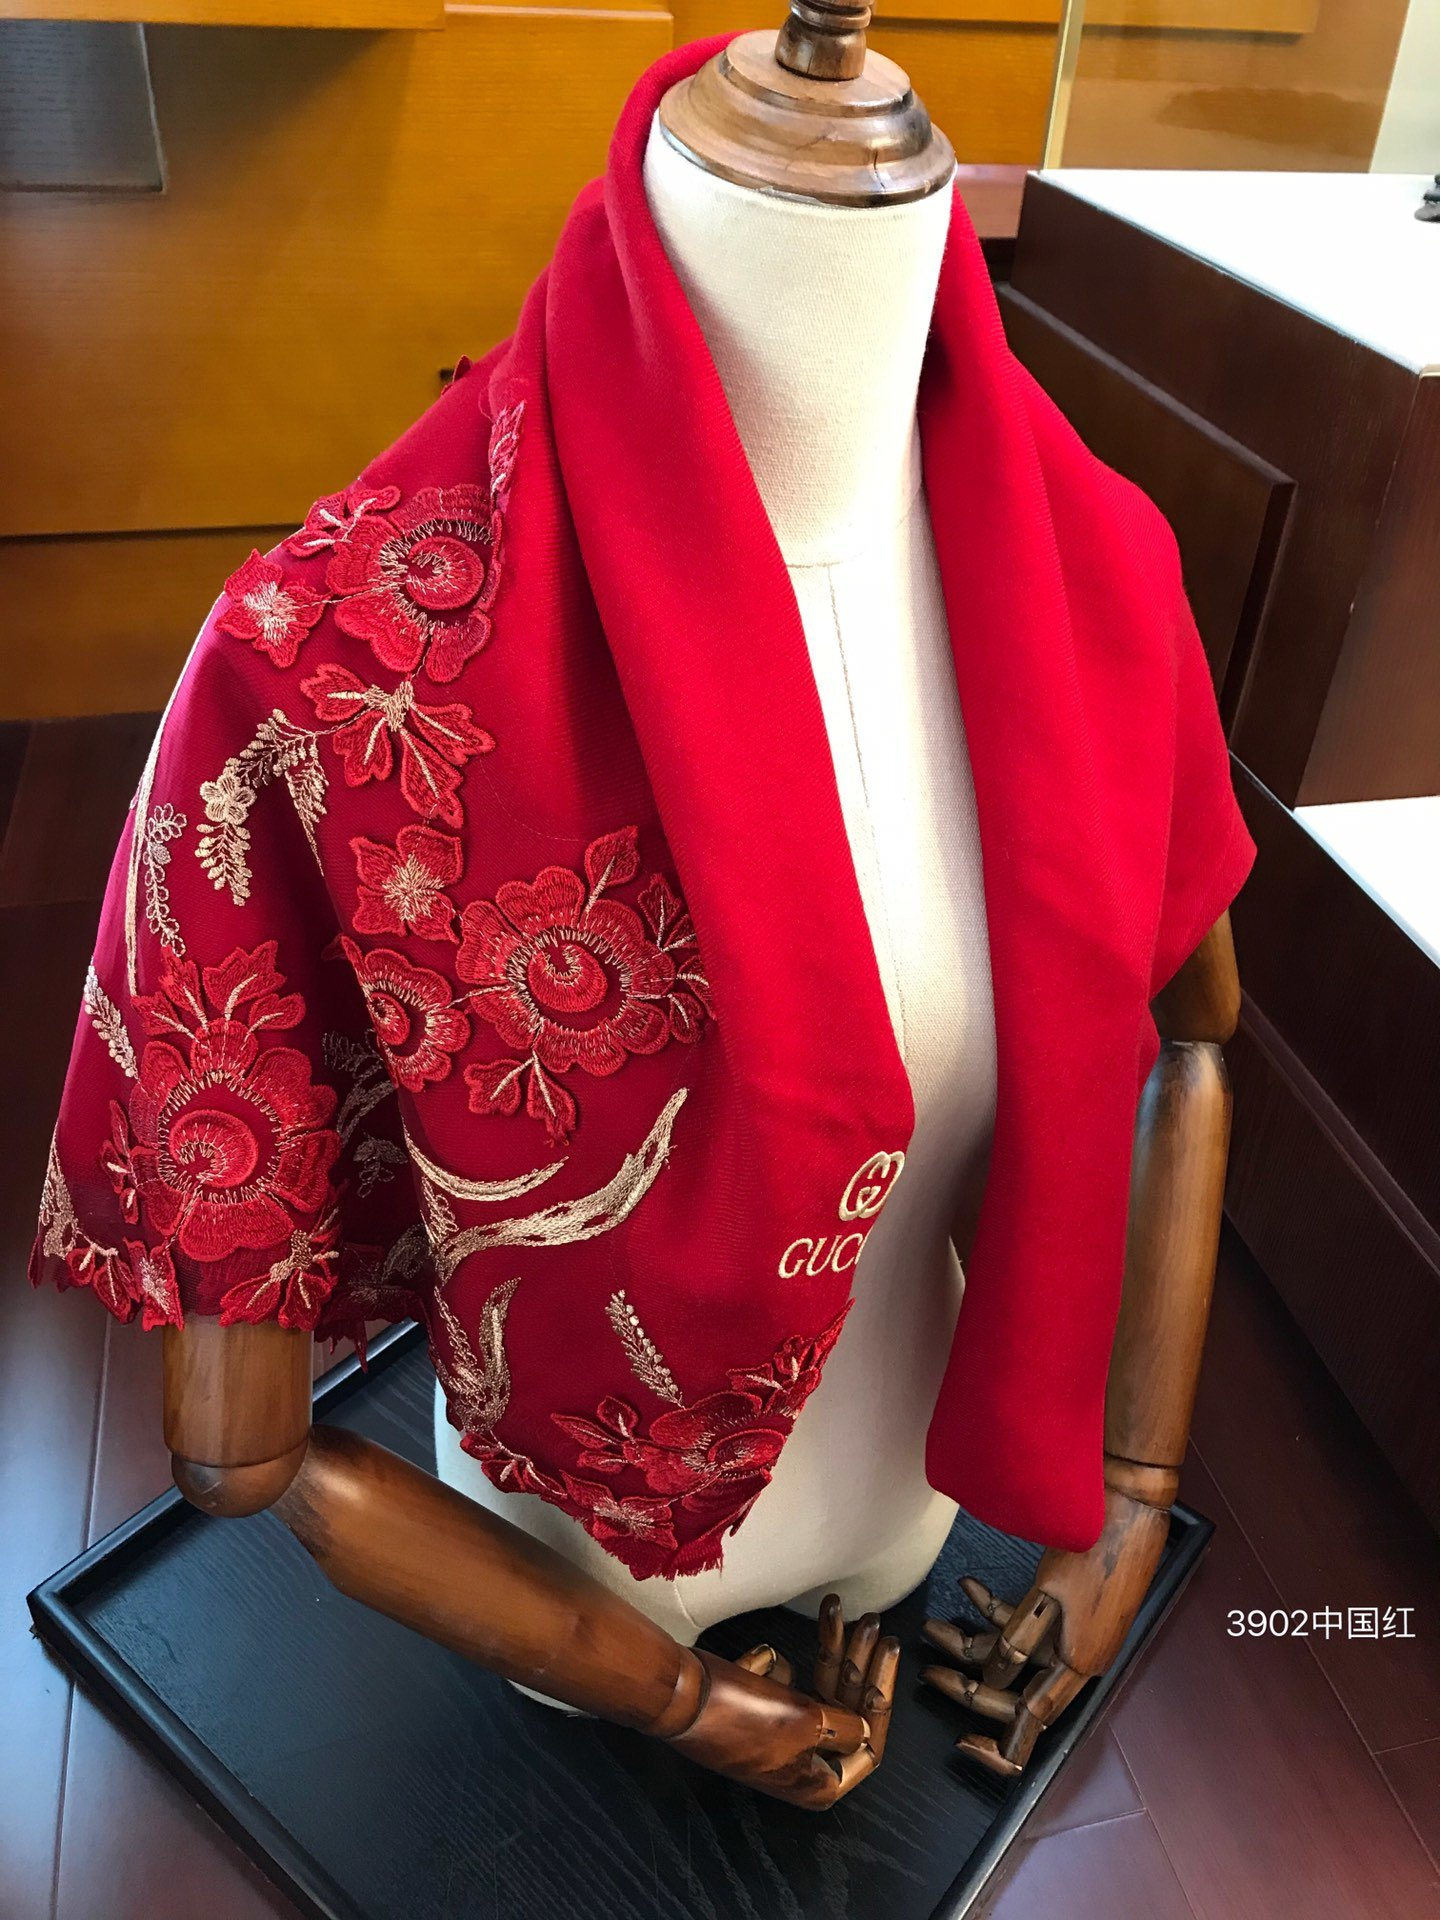 Cheap Replica Gucci Women Scarves 0007